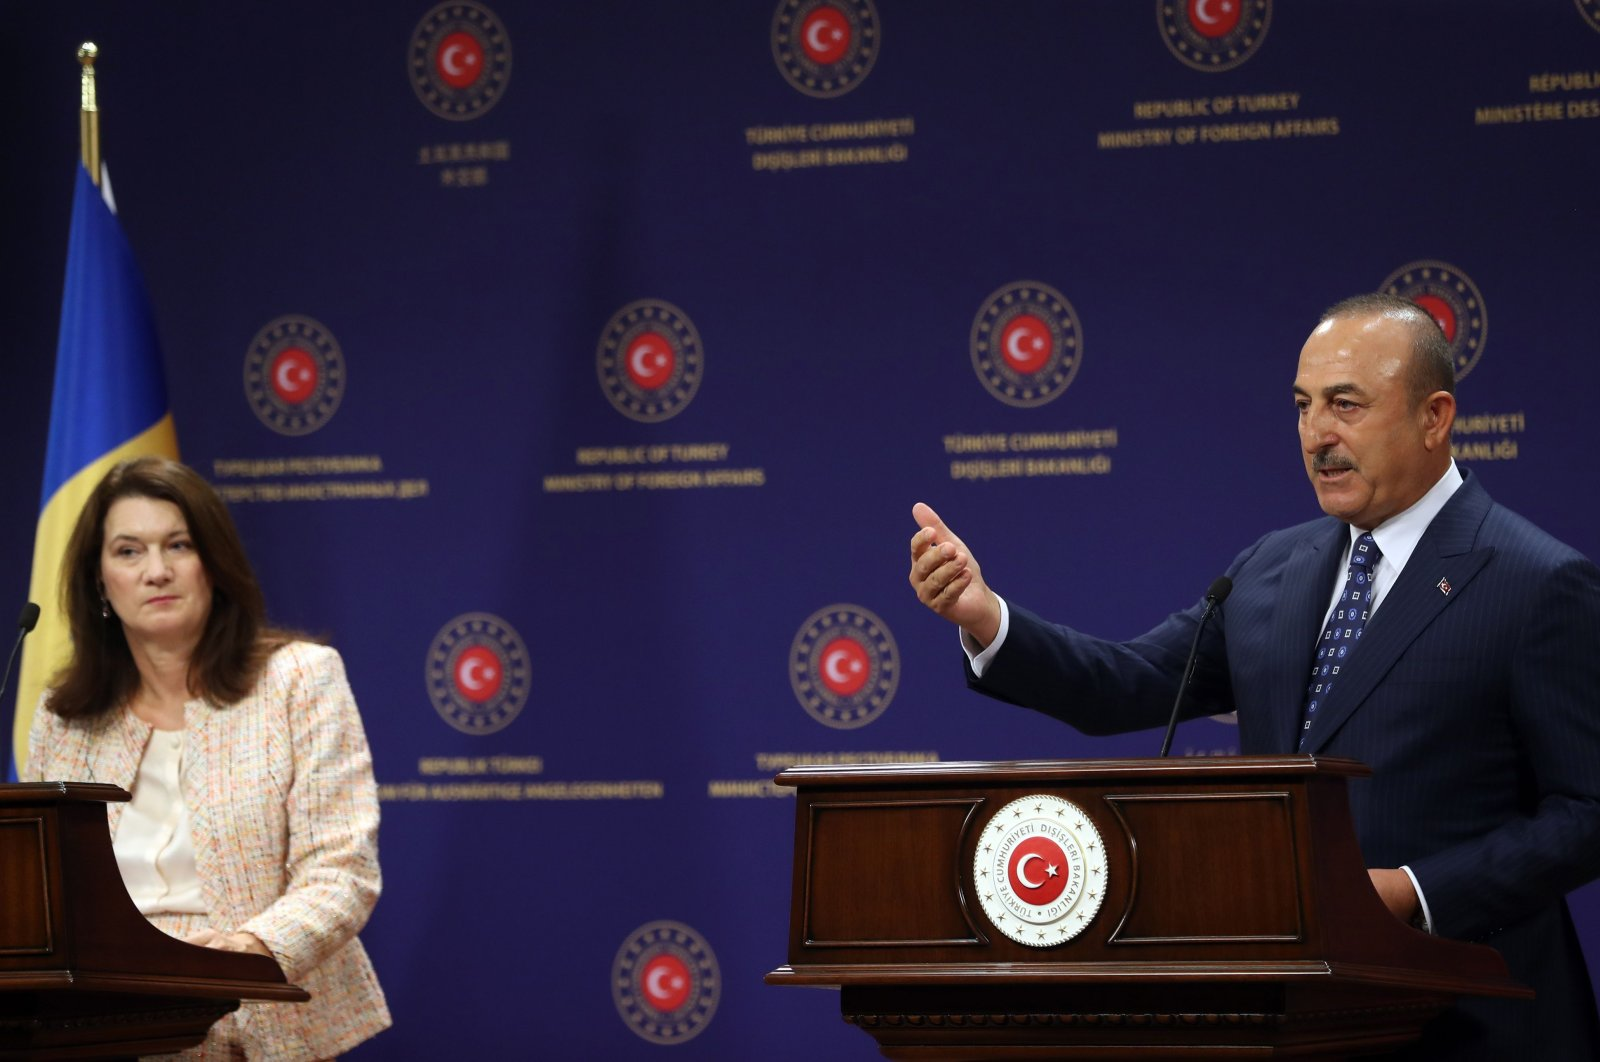 Turkish Foreign Minister Mevlüt Çavuşoğlu (R) and Swedish Foreign Minister Ann Linde (L) hold joint press conference after their meeting at the Foreign Ministry headquarters in Ankara, Turkey on October 13, 2020. (AFP Photo)